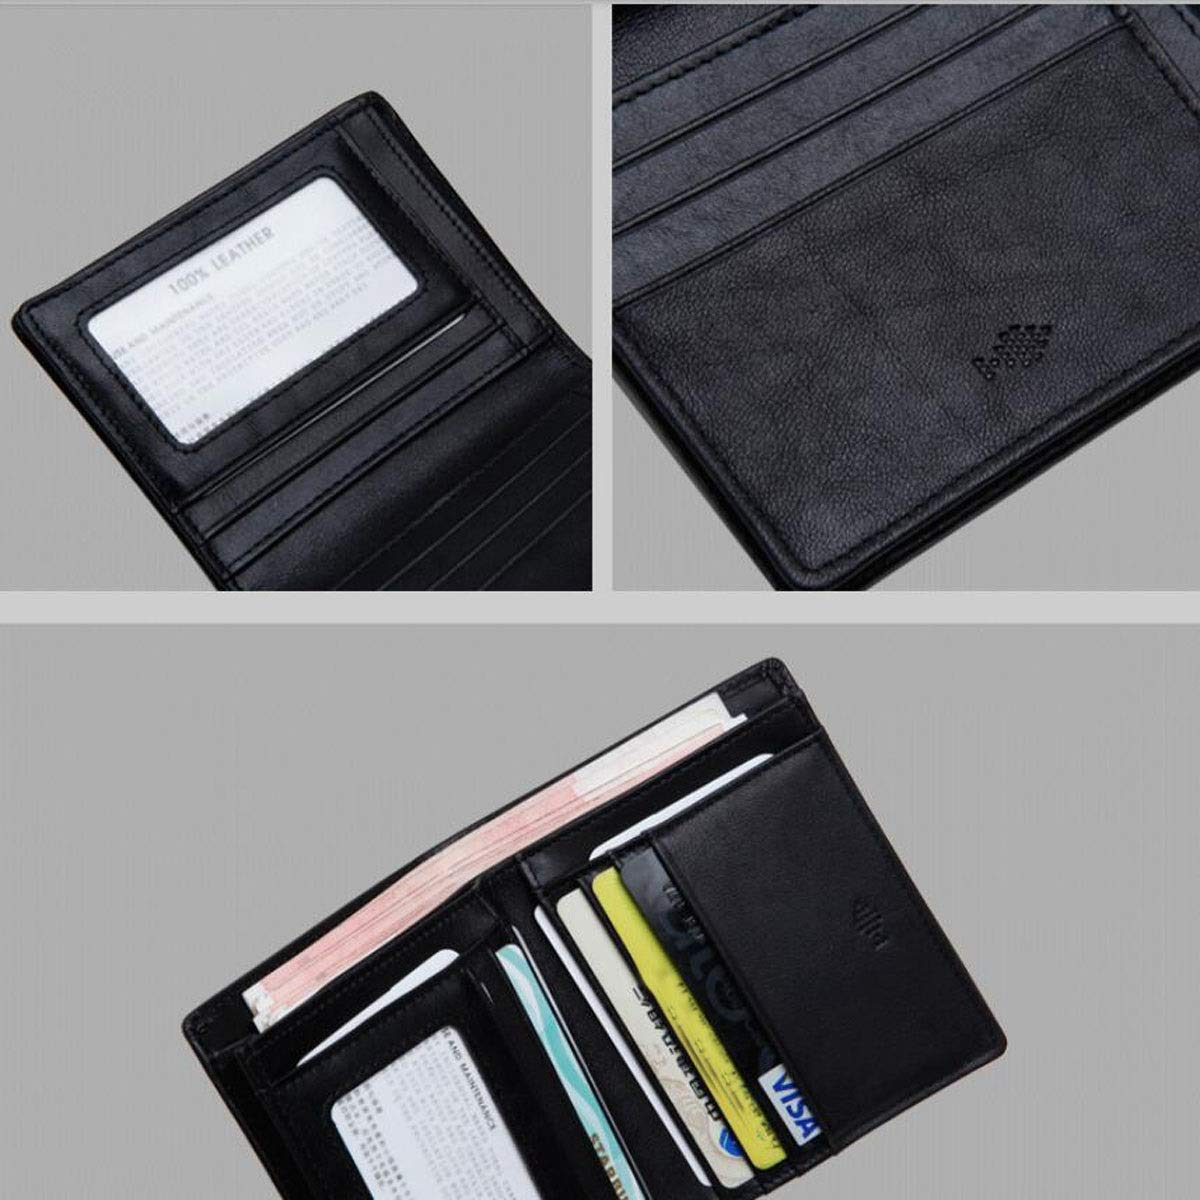 Black Kalmar RFID Travel Wallet for Men Fashion New Vertical Fashion Business Youth Leather Wallet Color cm Stealth Mode Blocking Leather Wallet Size 9.3 2.3 11.5